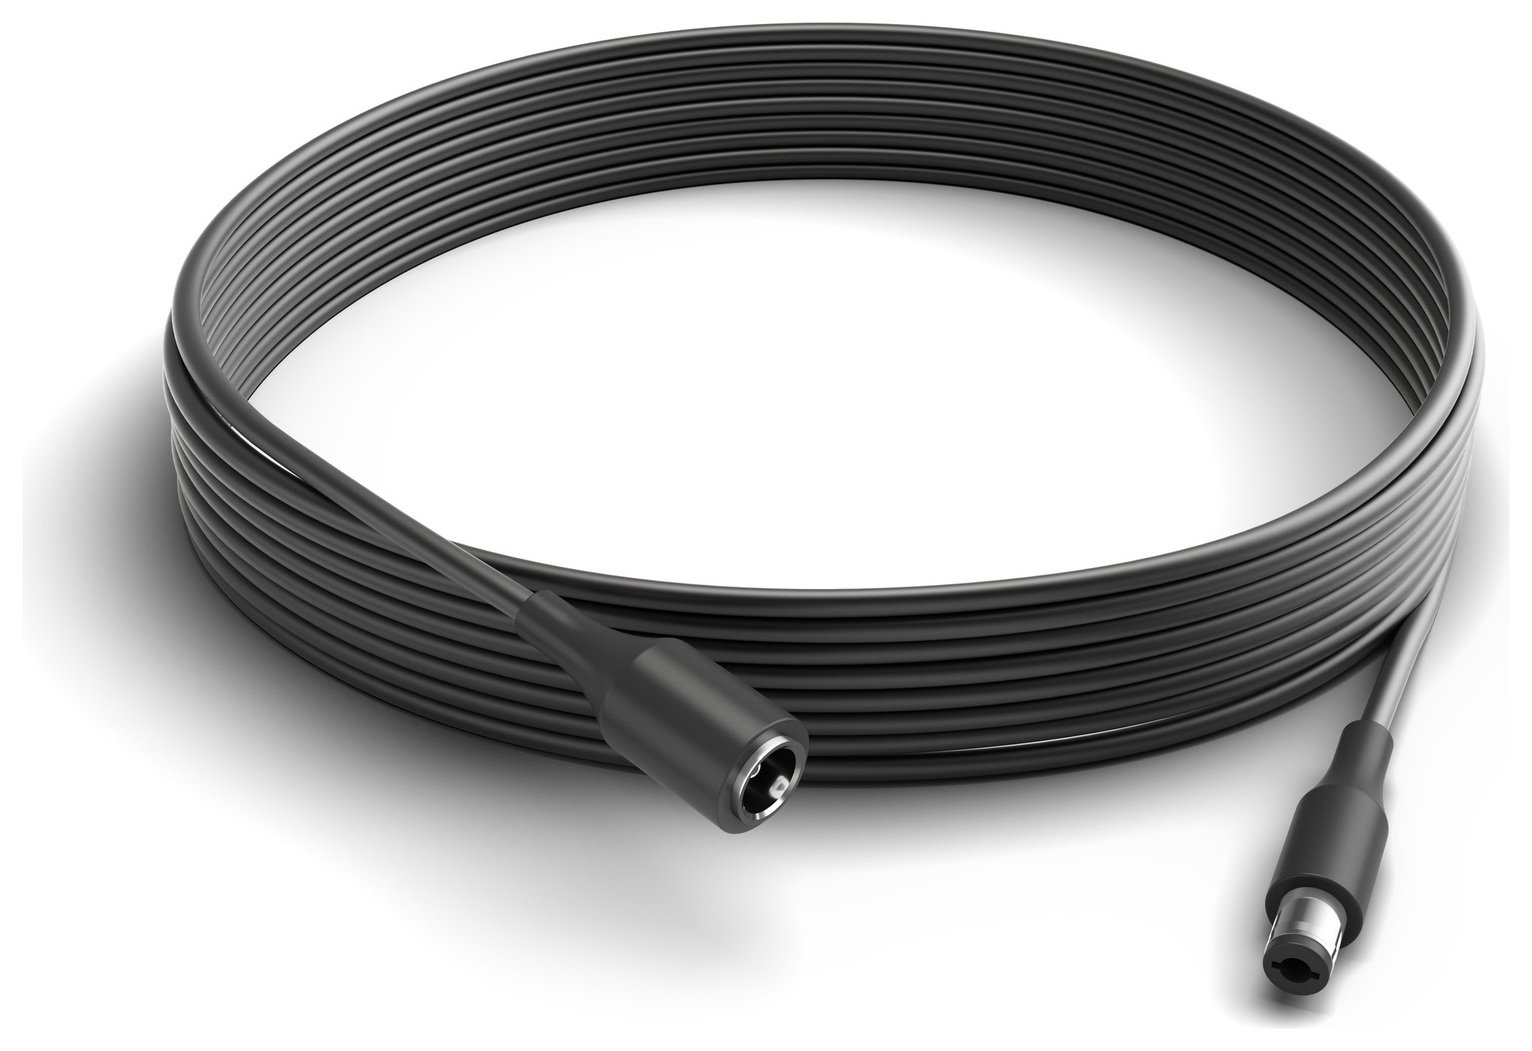 Philips Hue Play 5m Extension Cable - Black